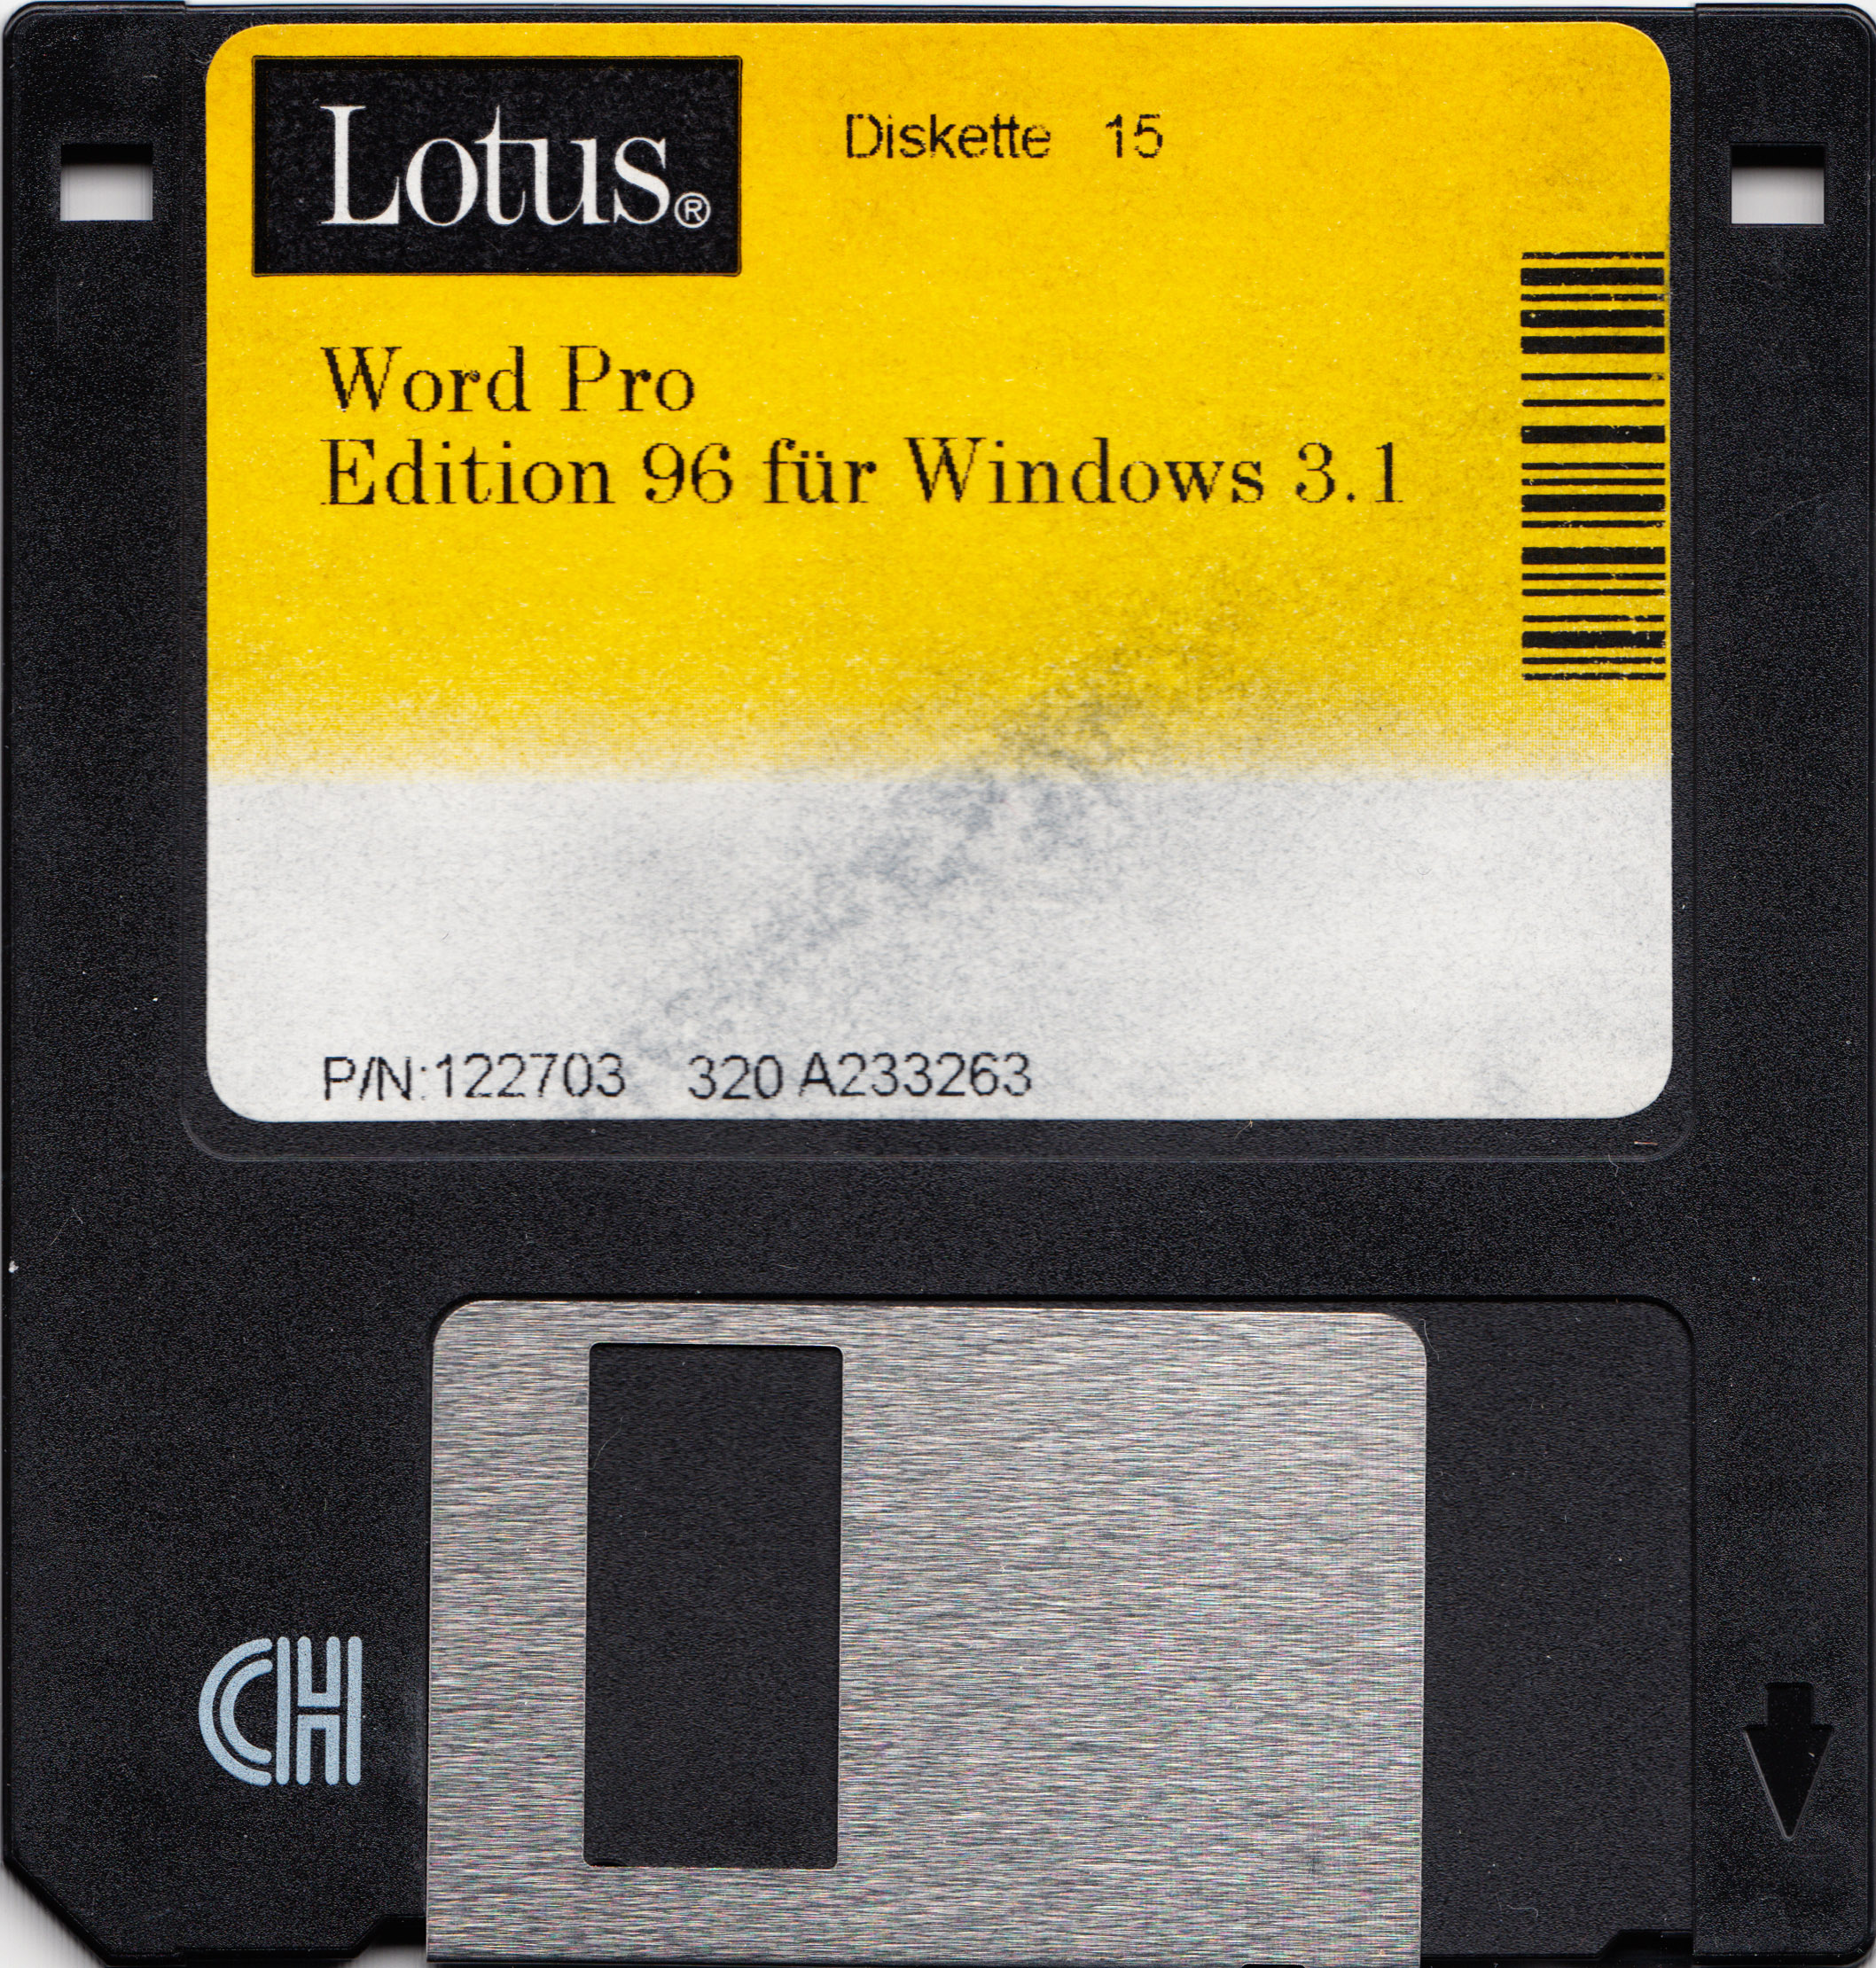 lotus wordpro edition 96 for windows 3 1 german lotus free download borrow and streaming internet archive lotus wordpro edition 96 for windows 3